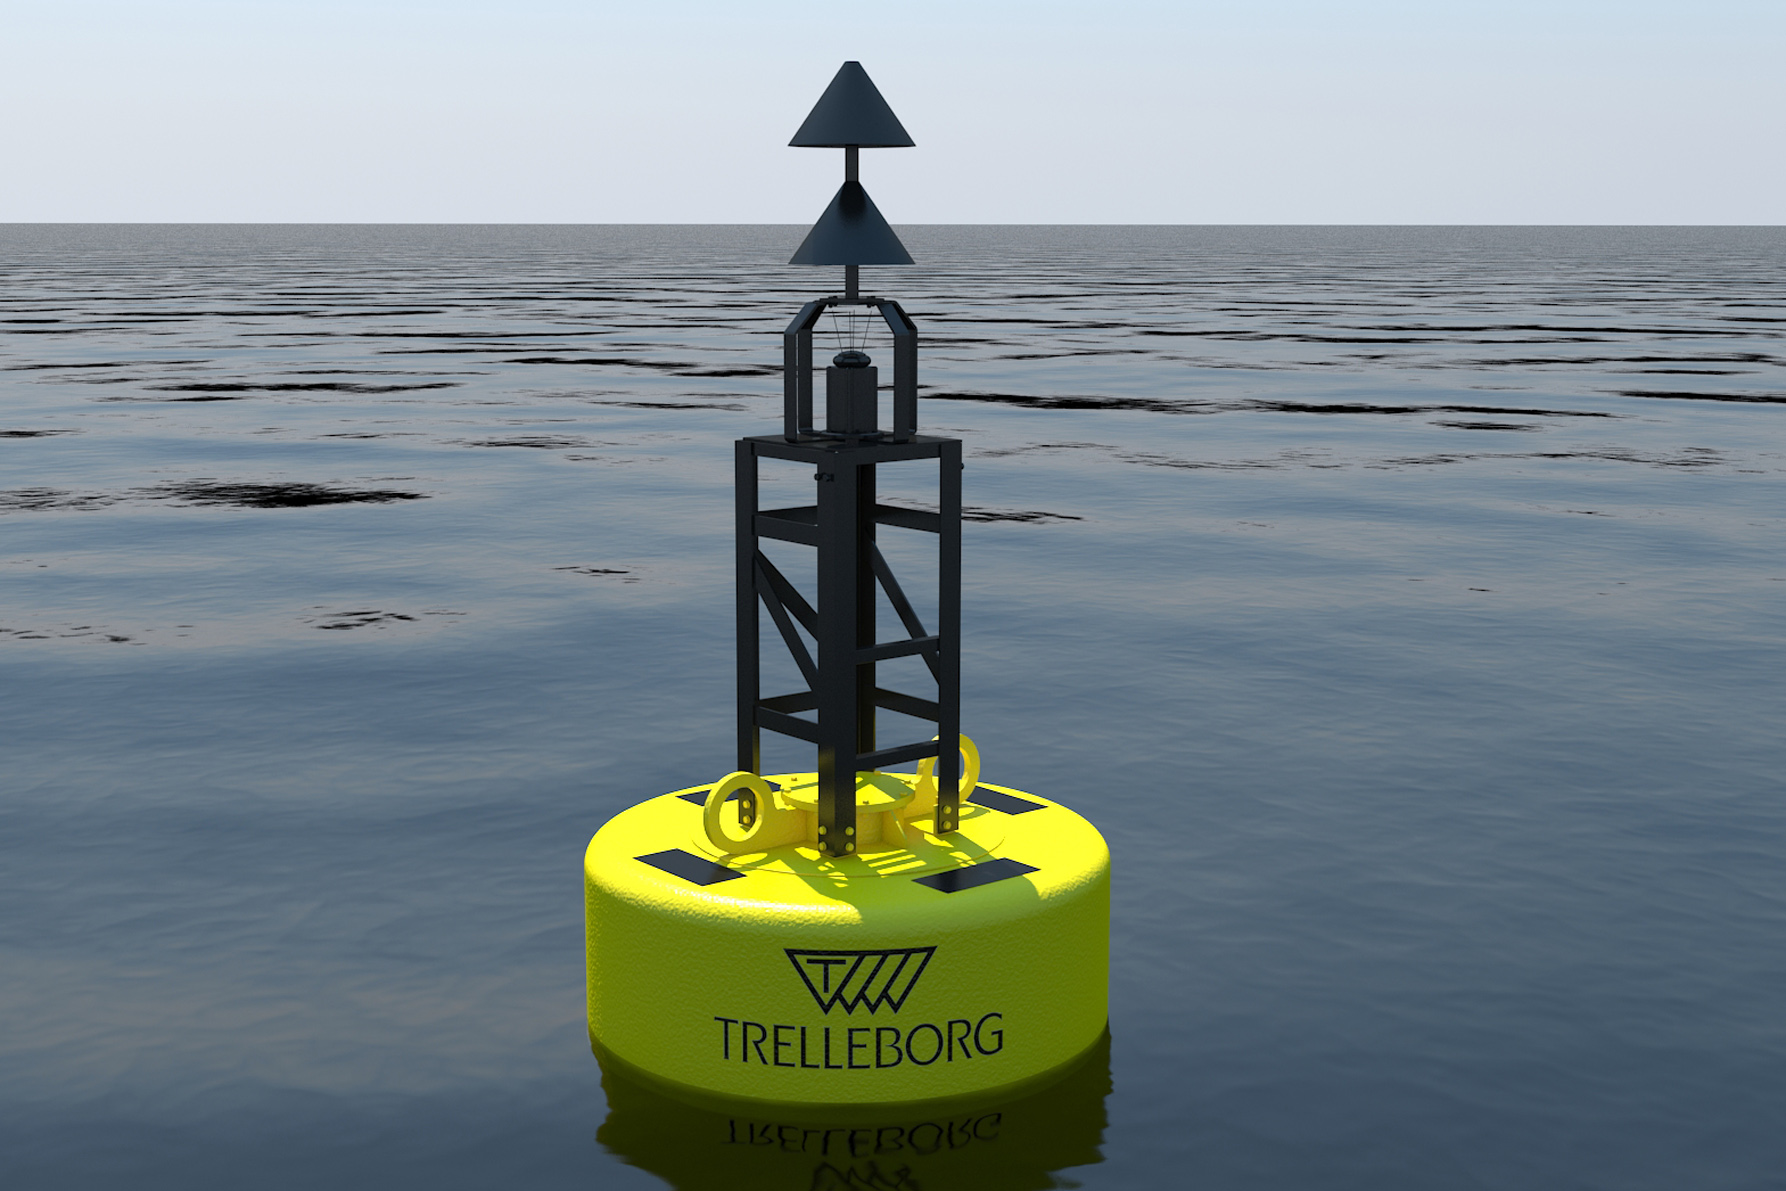 Trelleborg Offshore introduces new navigation aids